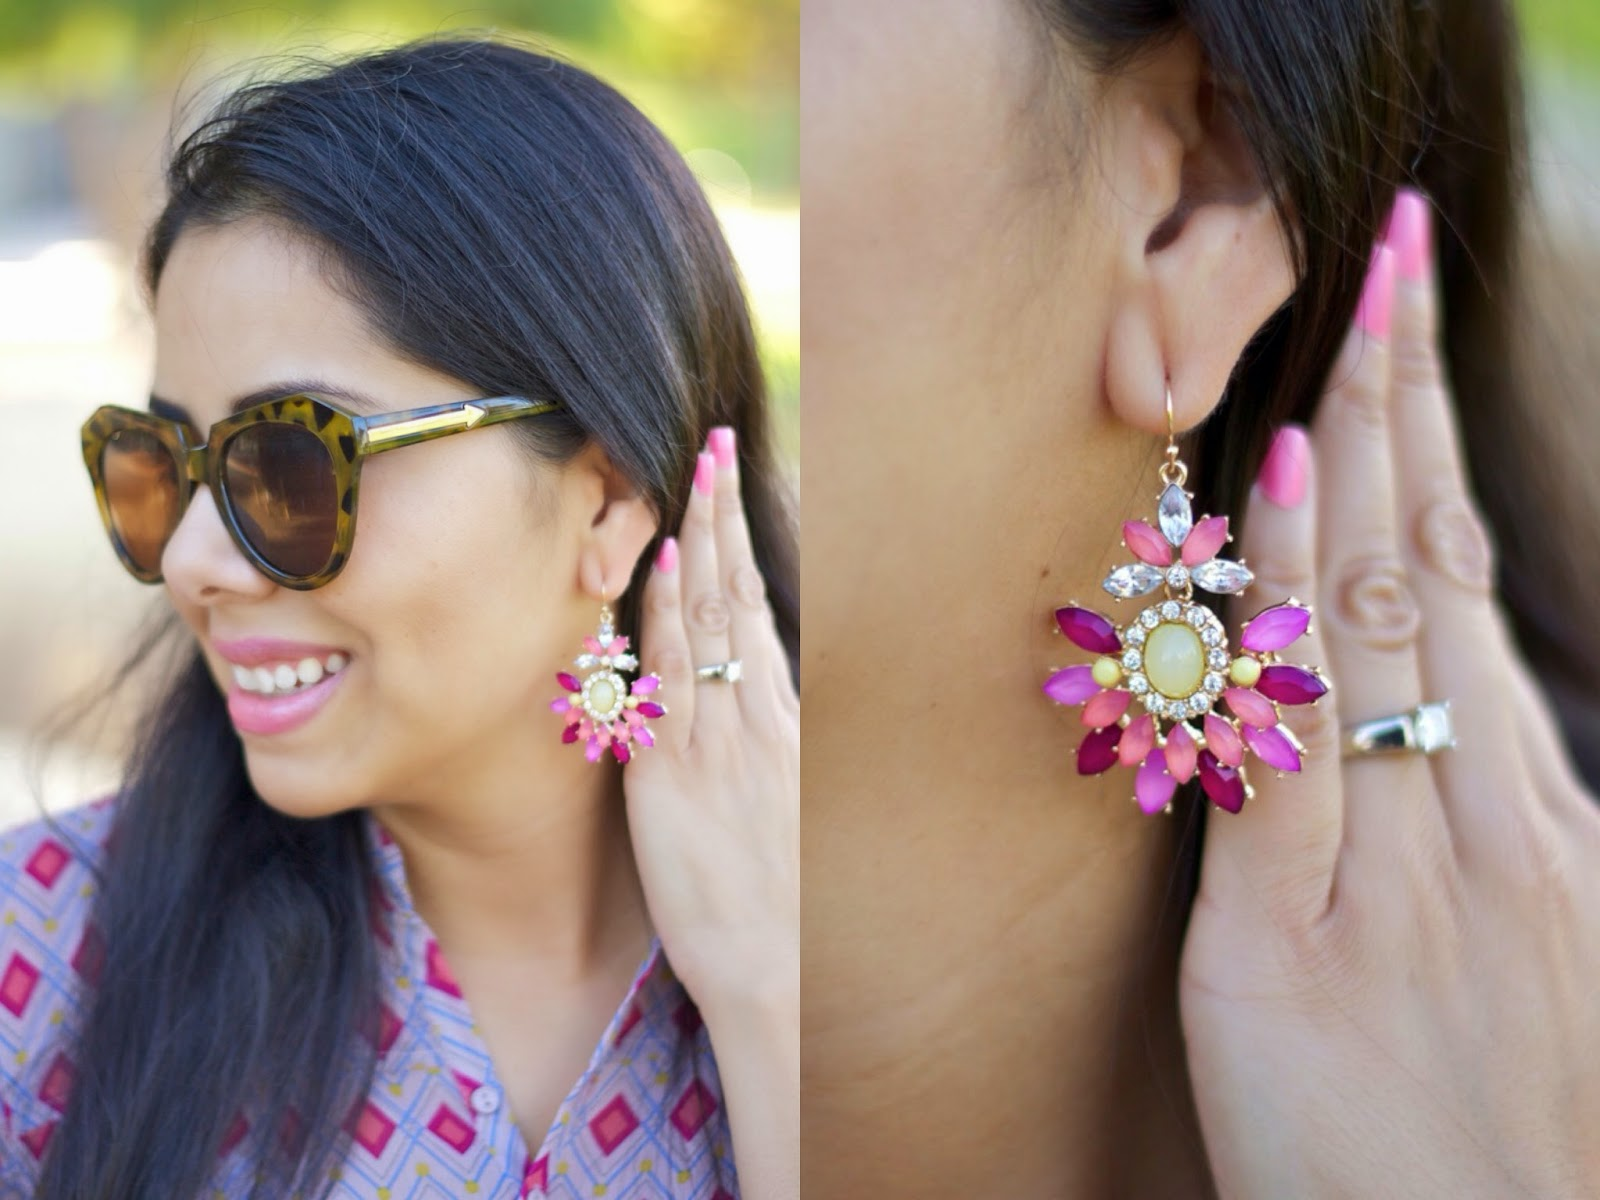 Al Fresca Earrings from DownEast Basics, Drop sparkly earrings, colorful cute earrings, karen walker sunglasses blogger